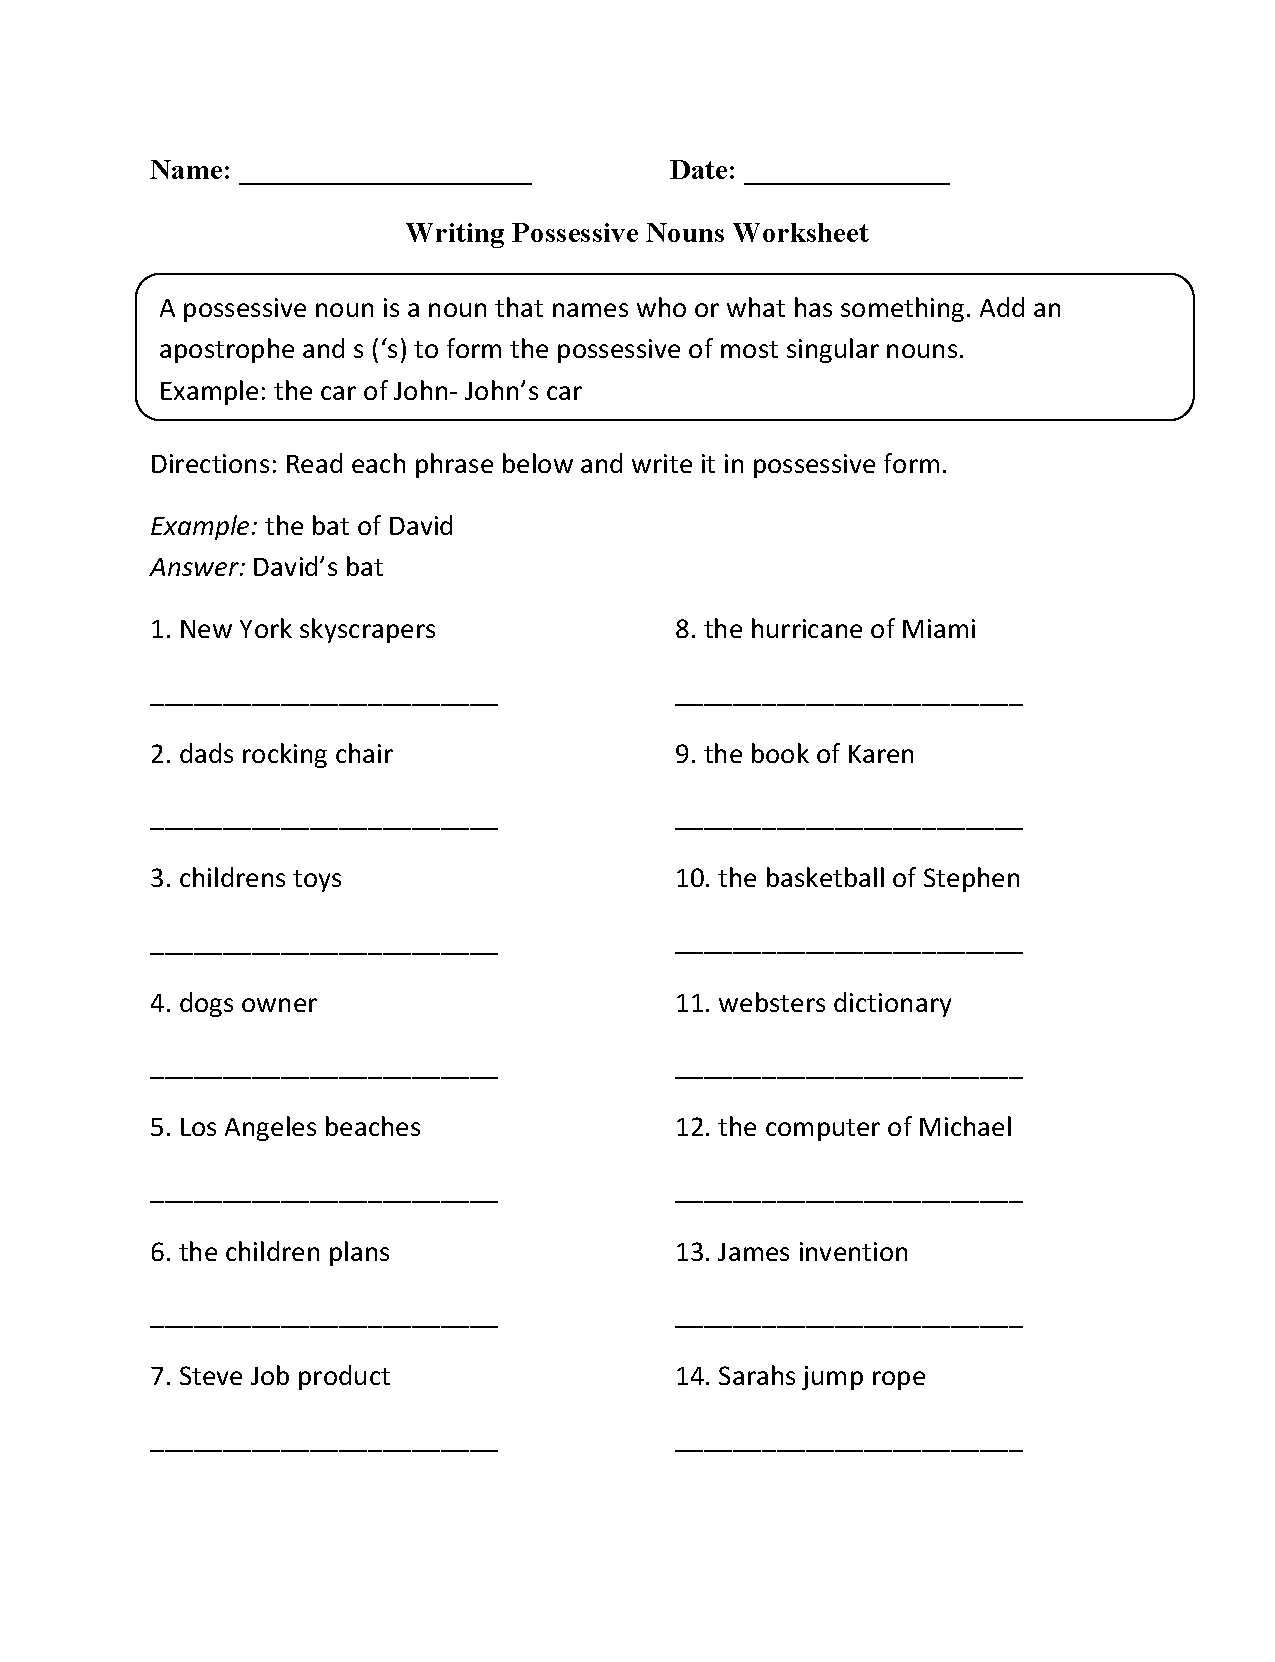 Nouns Worksheets | Possessive Nouns Worksheets - Free Printable Possessive Nouns Worksheets